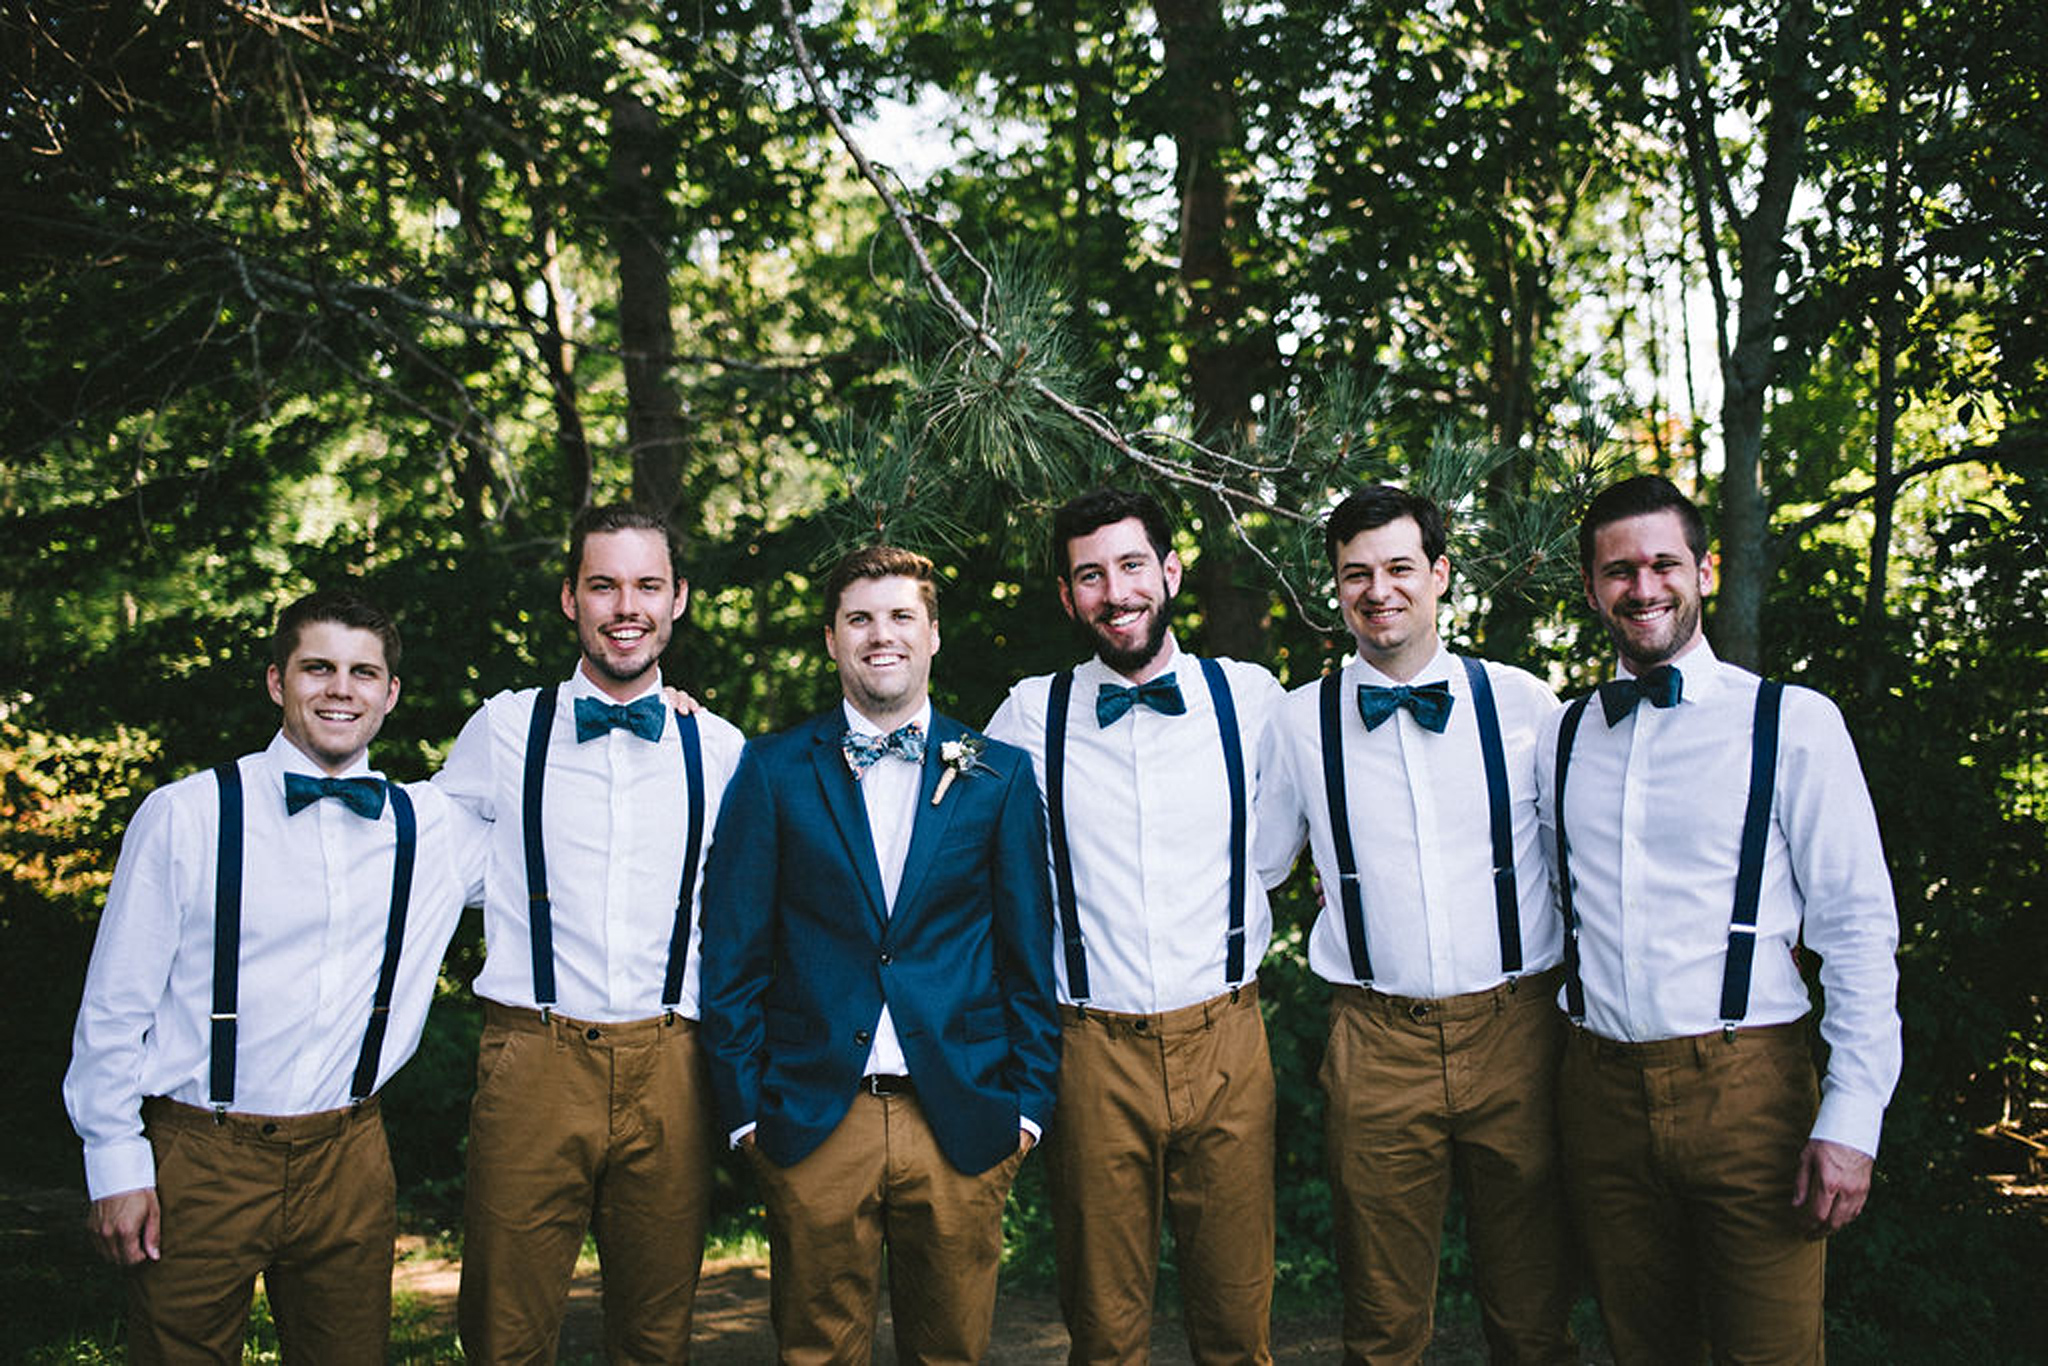 Groomsmen style in bowties and suspenders at Parry Sound camp we